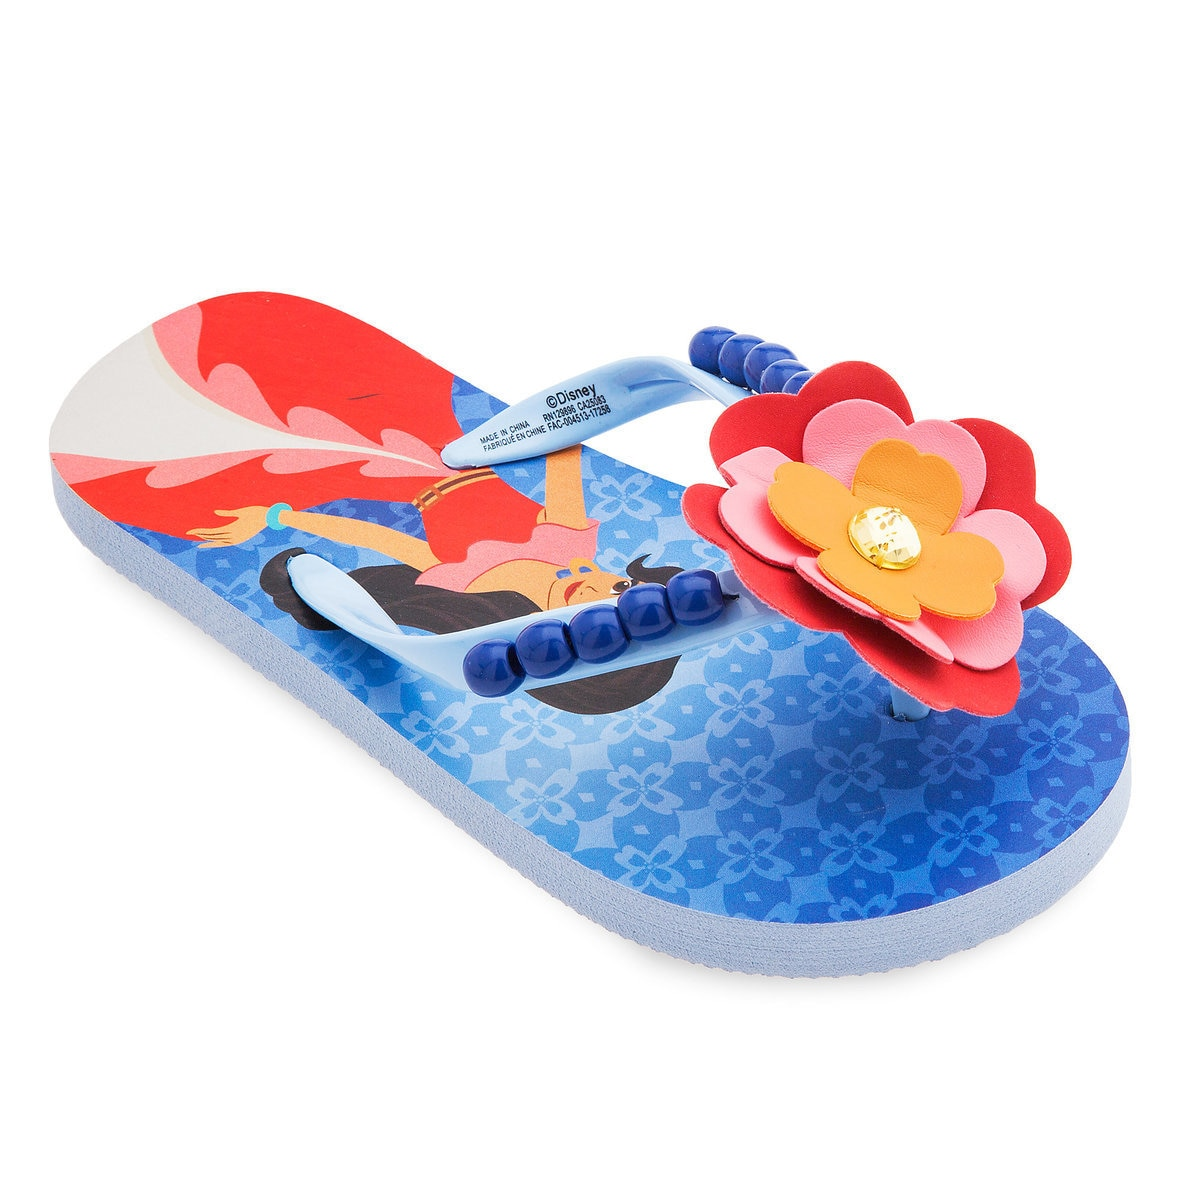 a8adab5b3 Product Image of Elena of Avalor Flip Flops for Kids   1